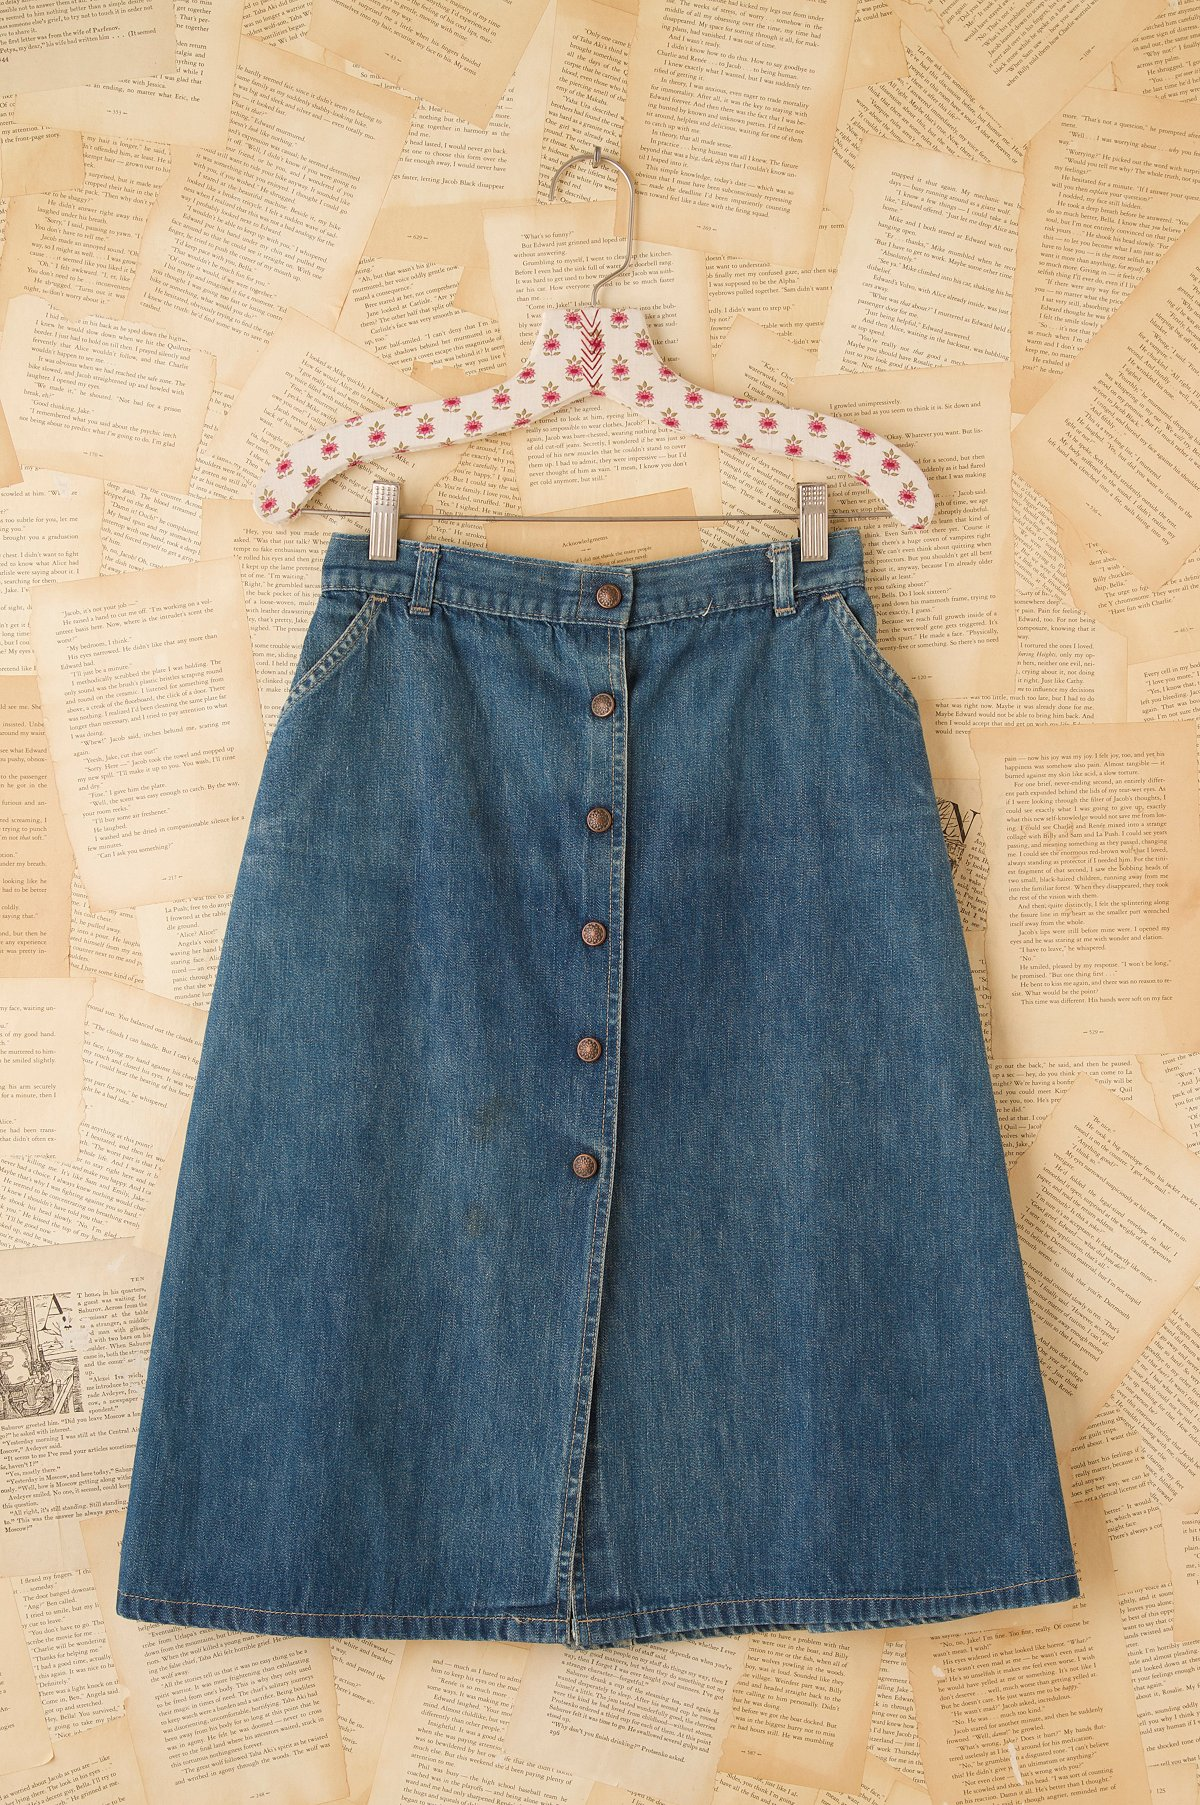 Vintage 1960s Snap Front Skirt